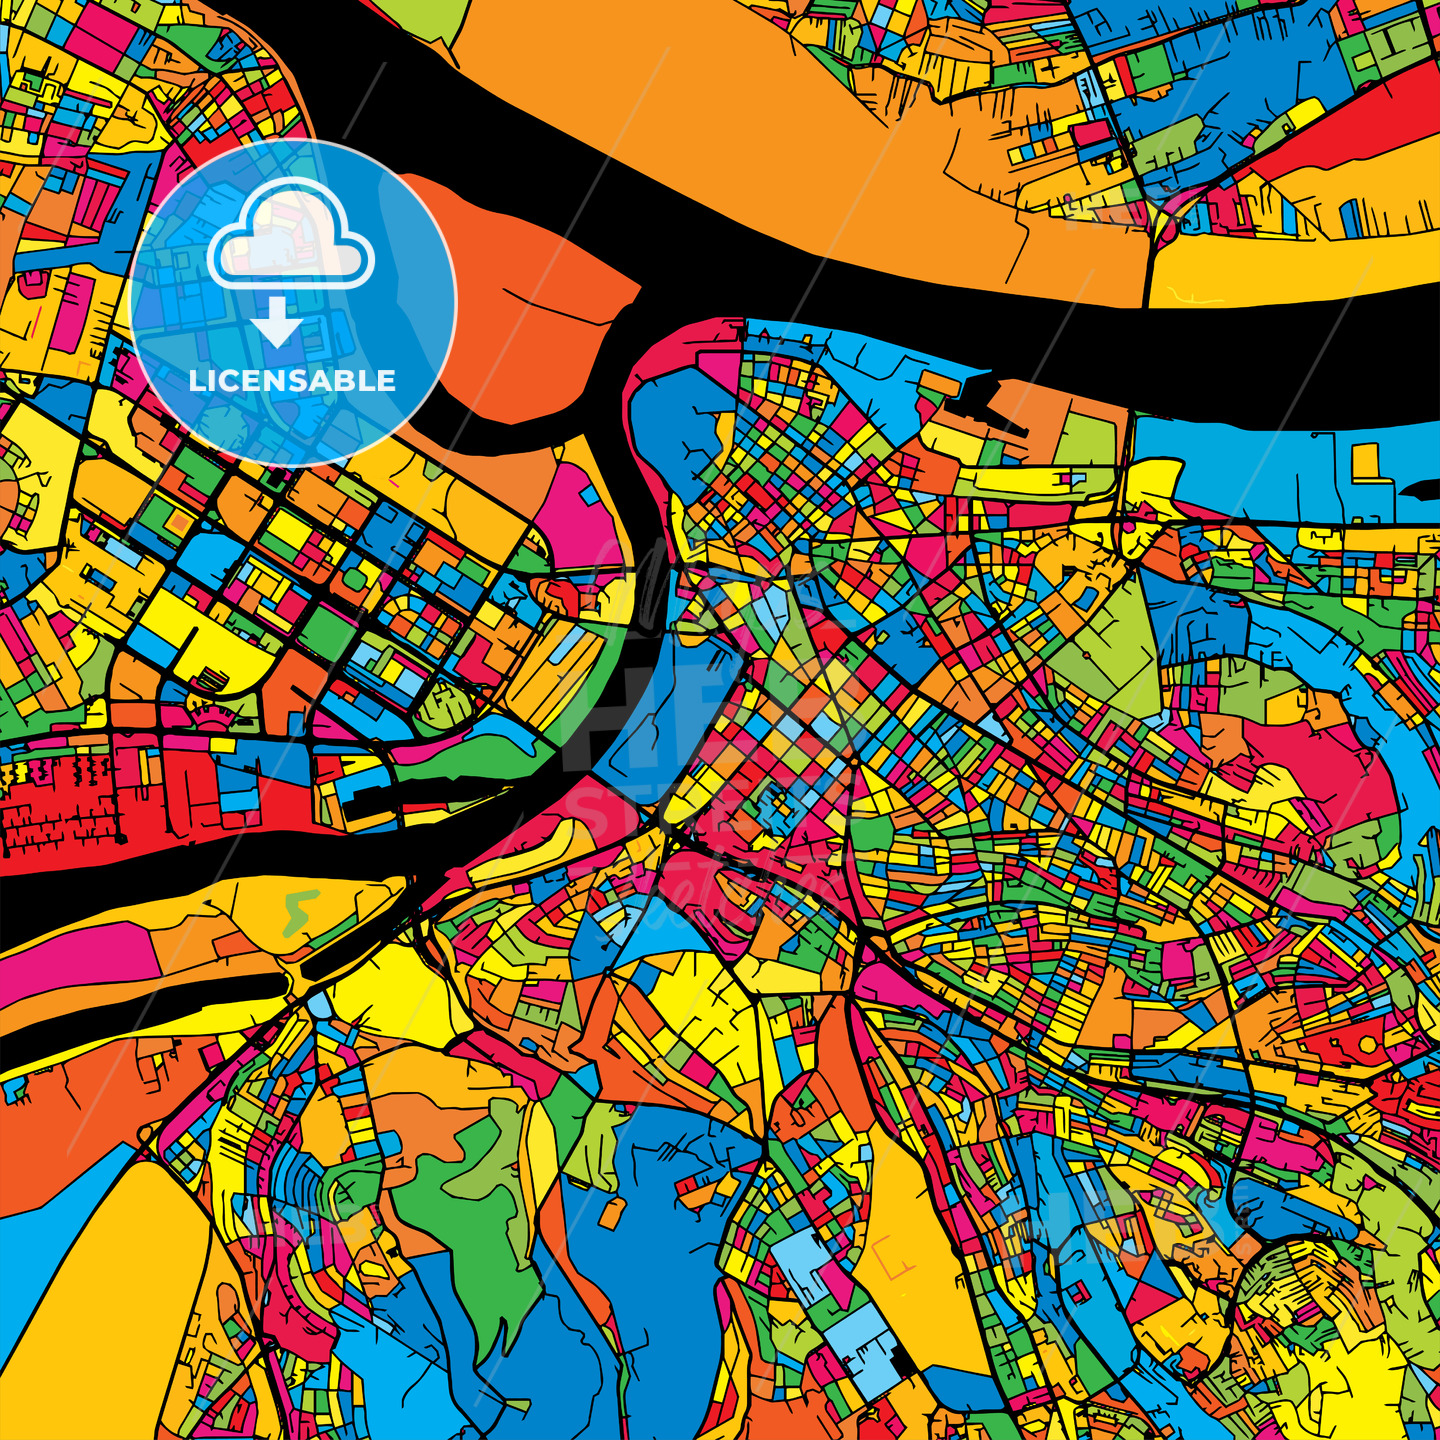 Belgrade Serbia Colorful Map - HEBSTREIT's Sketches